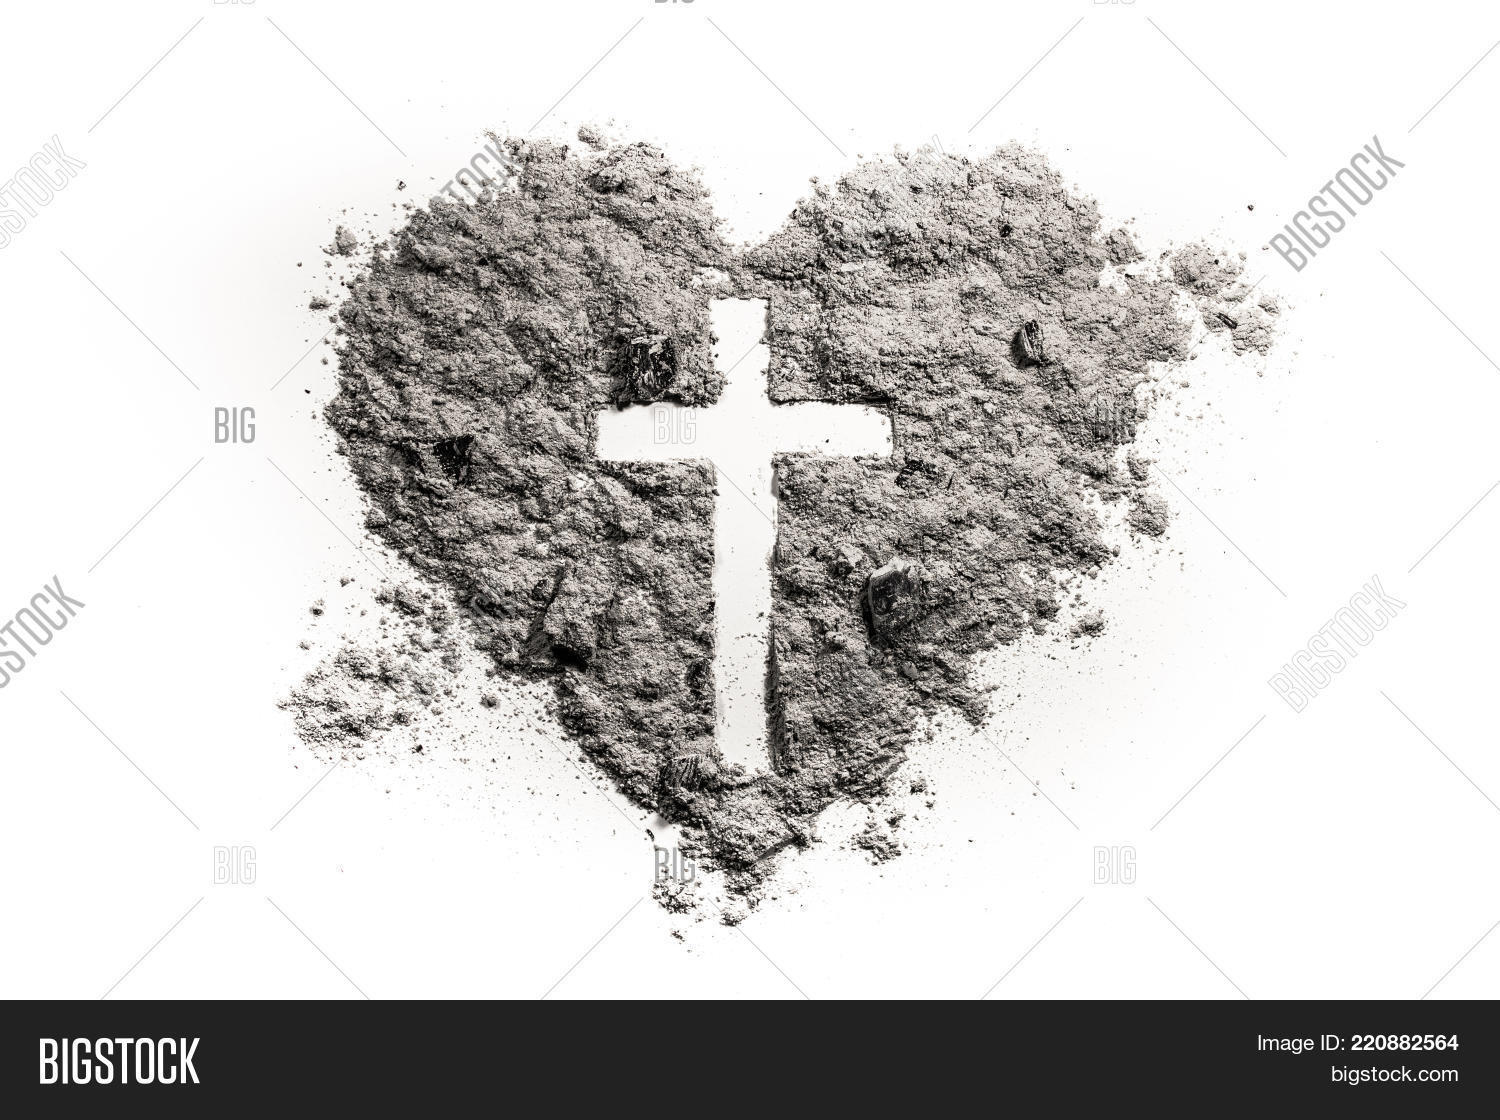 Cross crucifix heart symbol made image photo bigstock cross or crucifix in heart symbol made of ash sand or dust as jesus christ buycottarizona